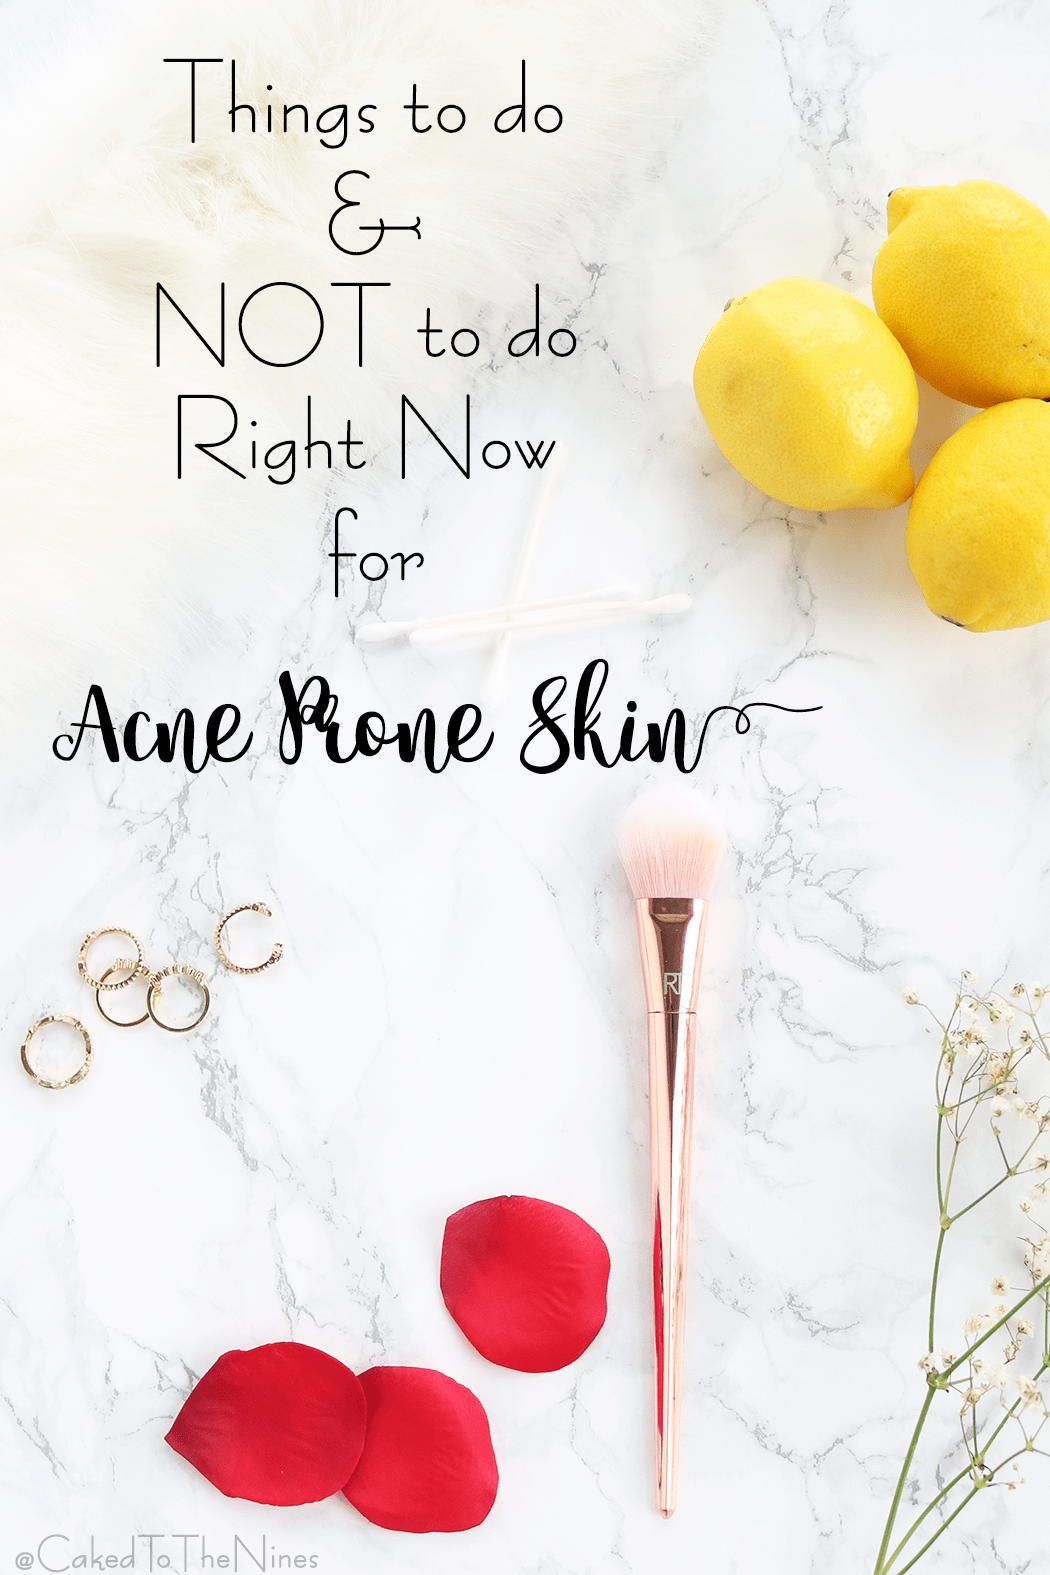 Things to do and not to do for acne prone skin. Things you should and shouldn't do right now for acne prone skin to help treat acne and heal any scars.